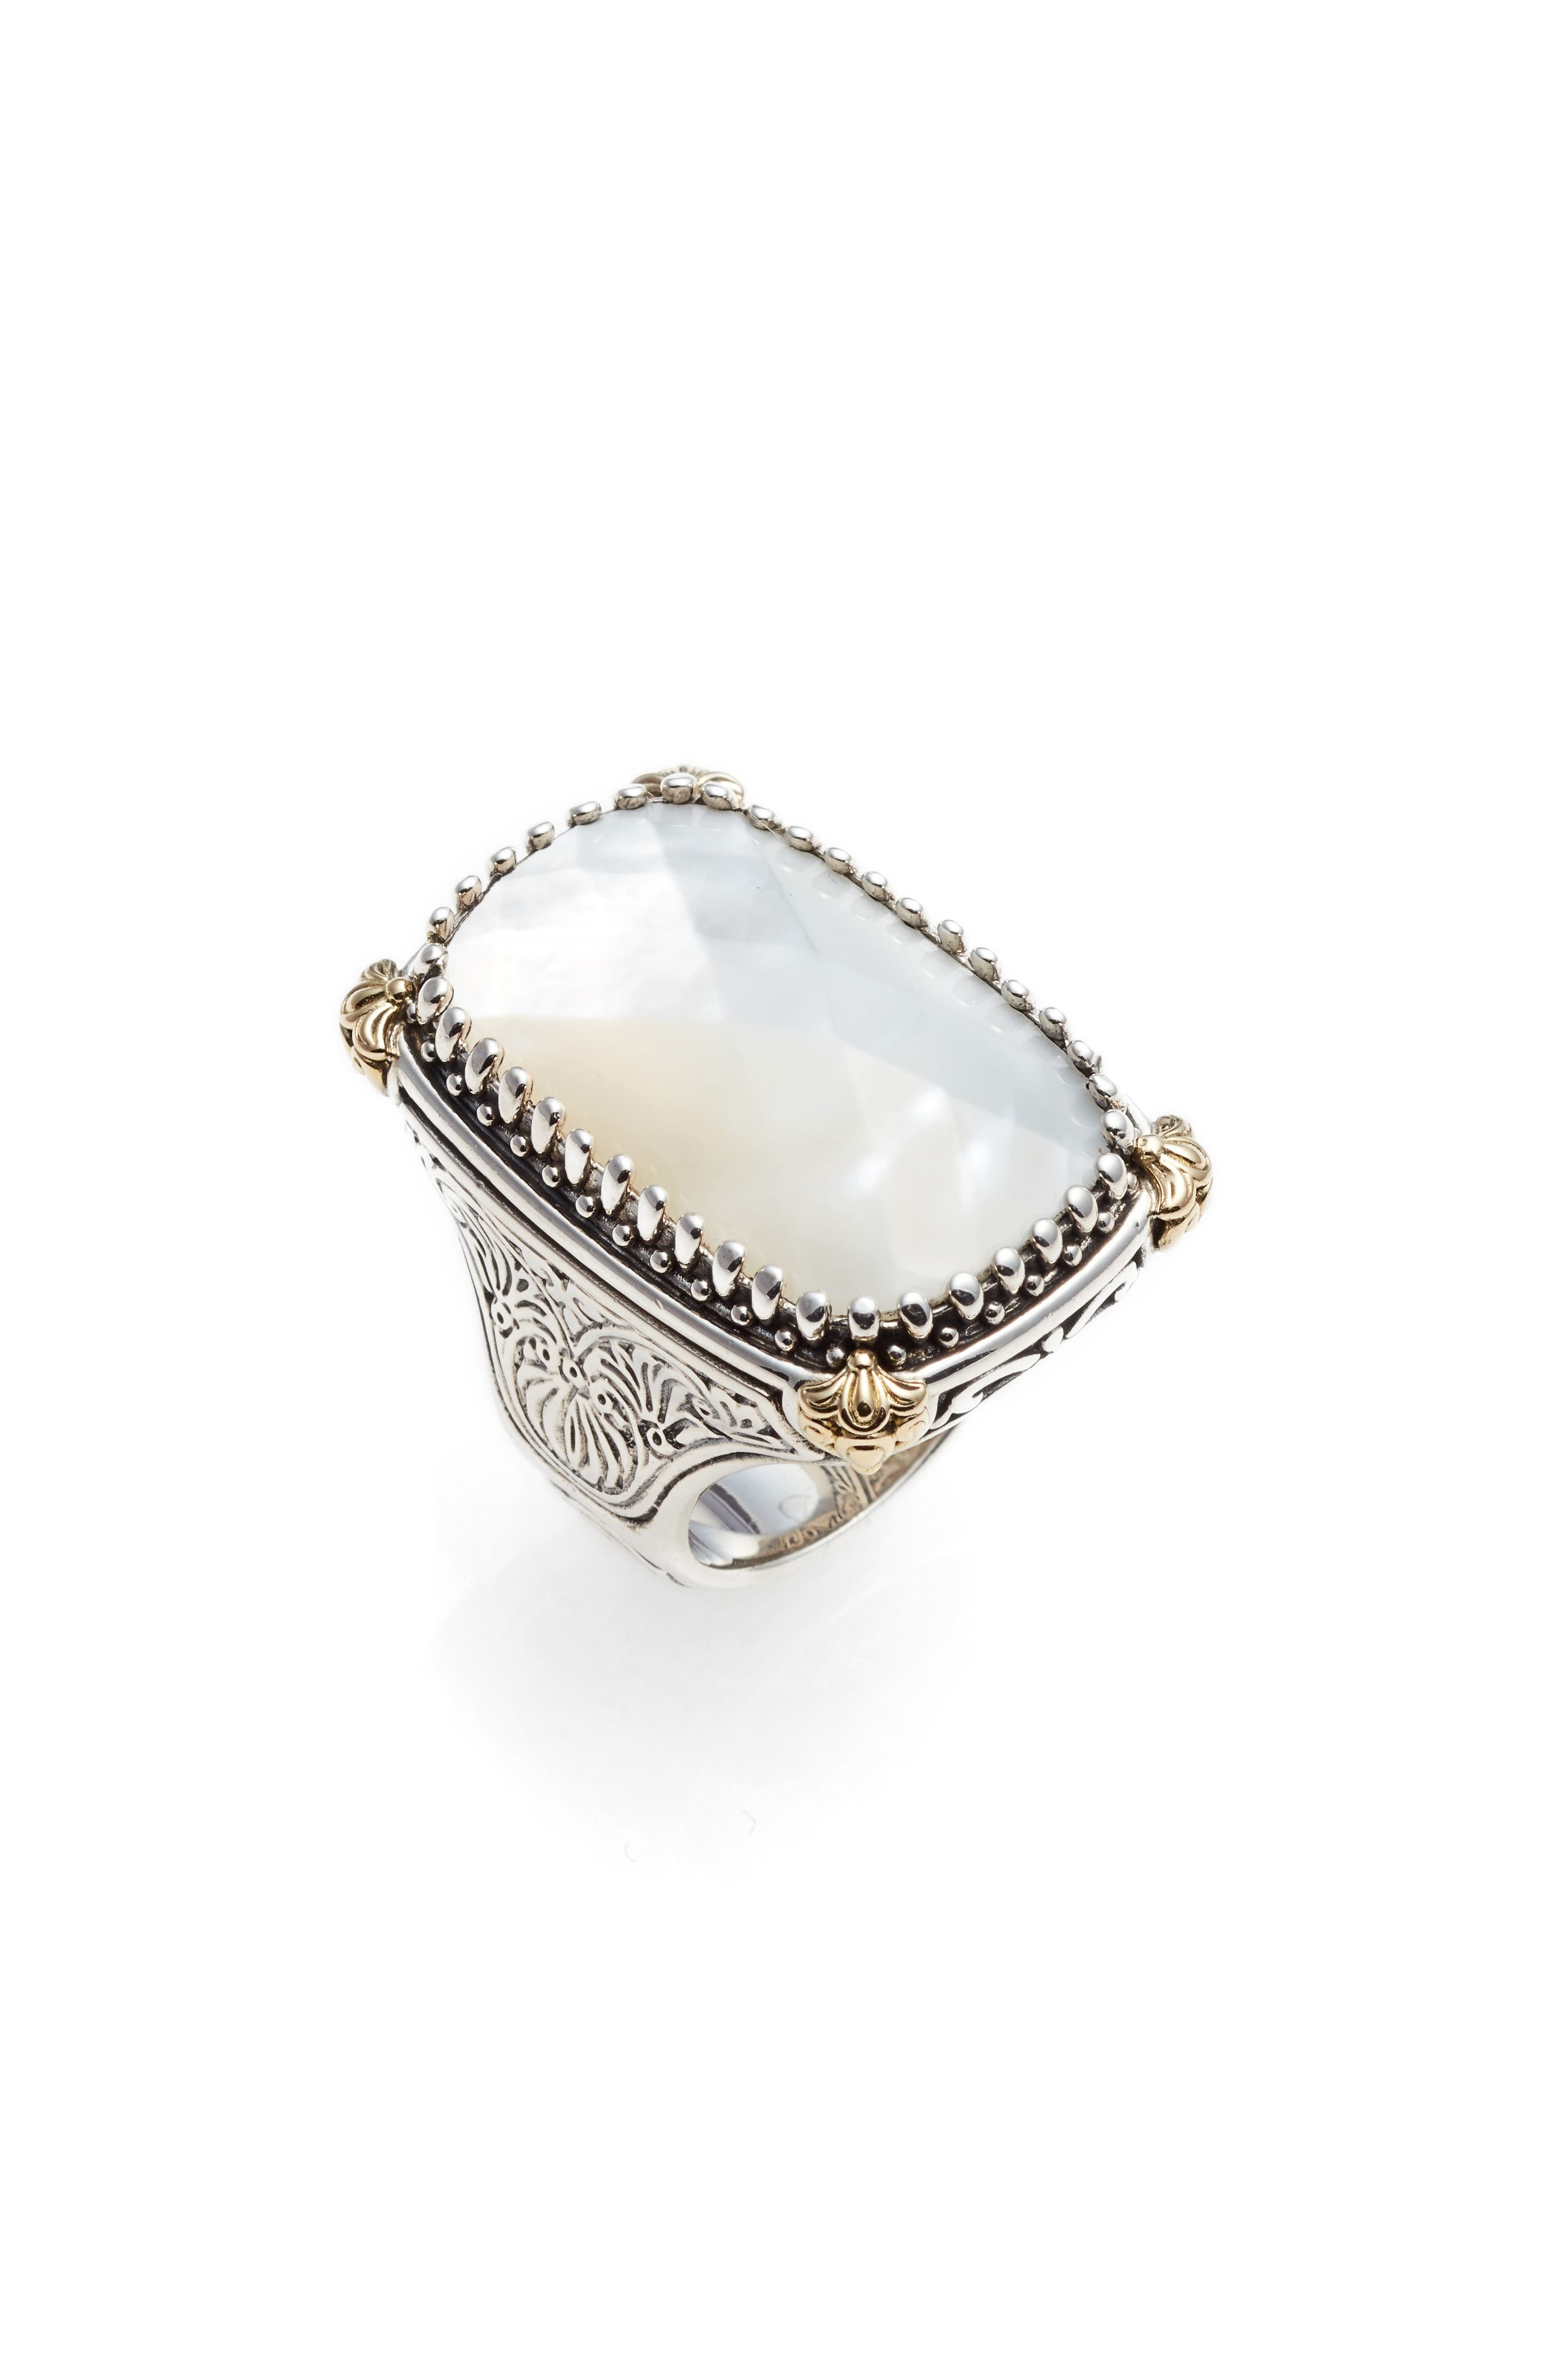 Selene Mother of Pearl Ring,                         Main,                         color, Silver/ Gold/ Mother Of Pearl